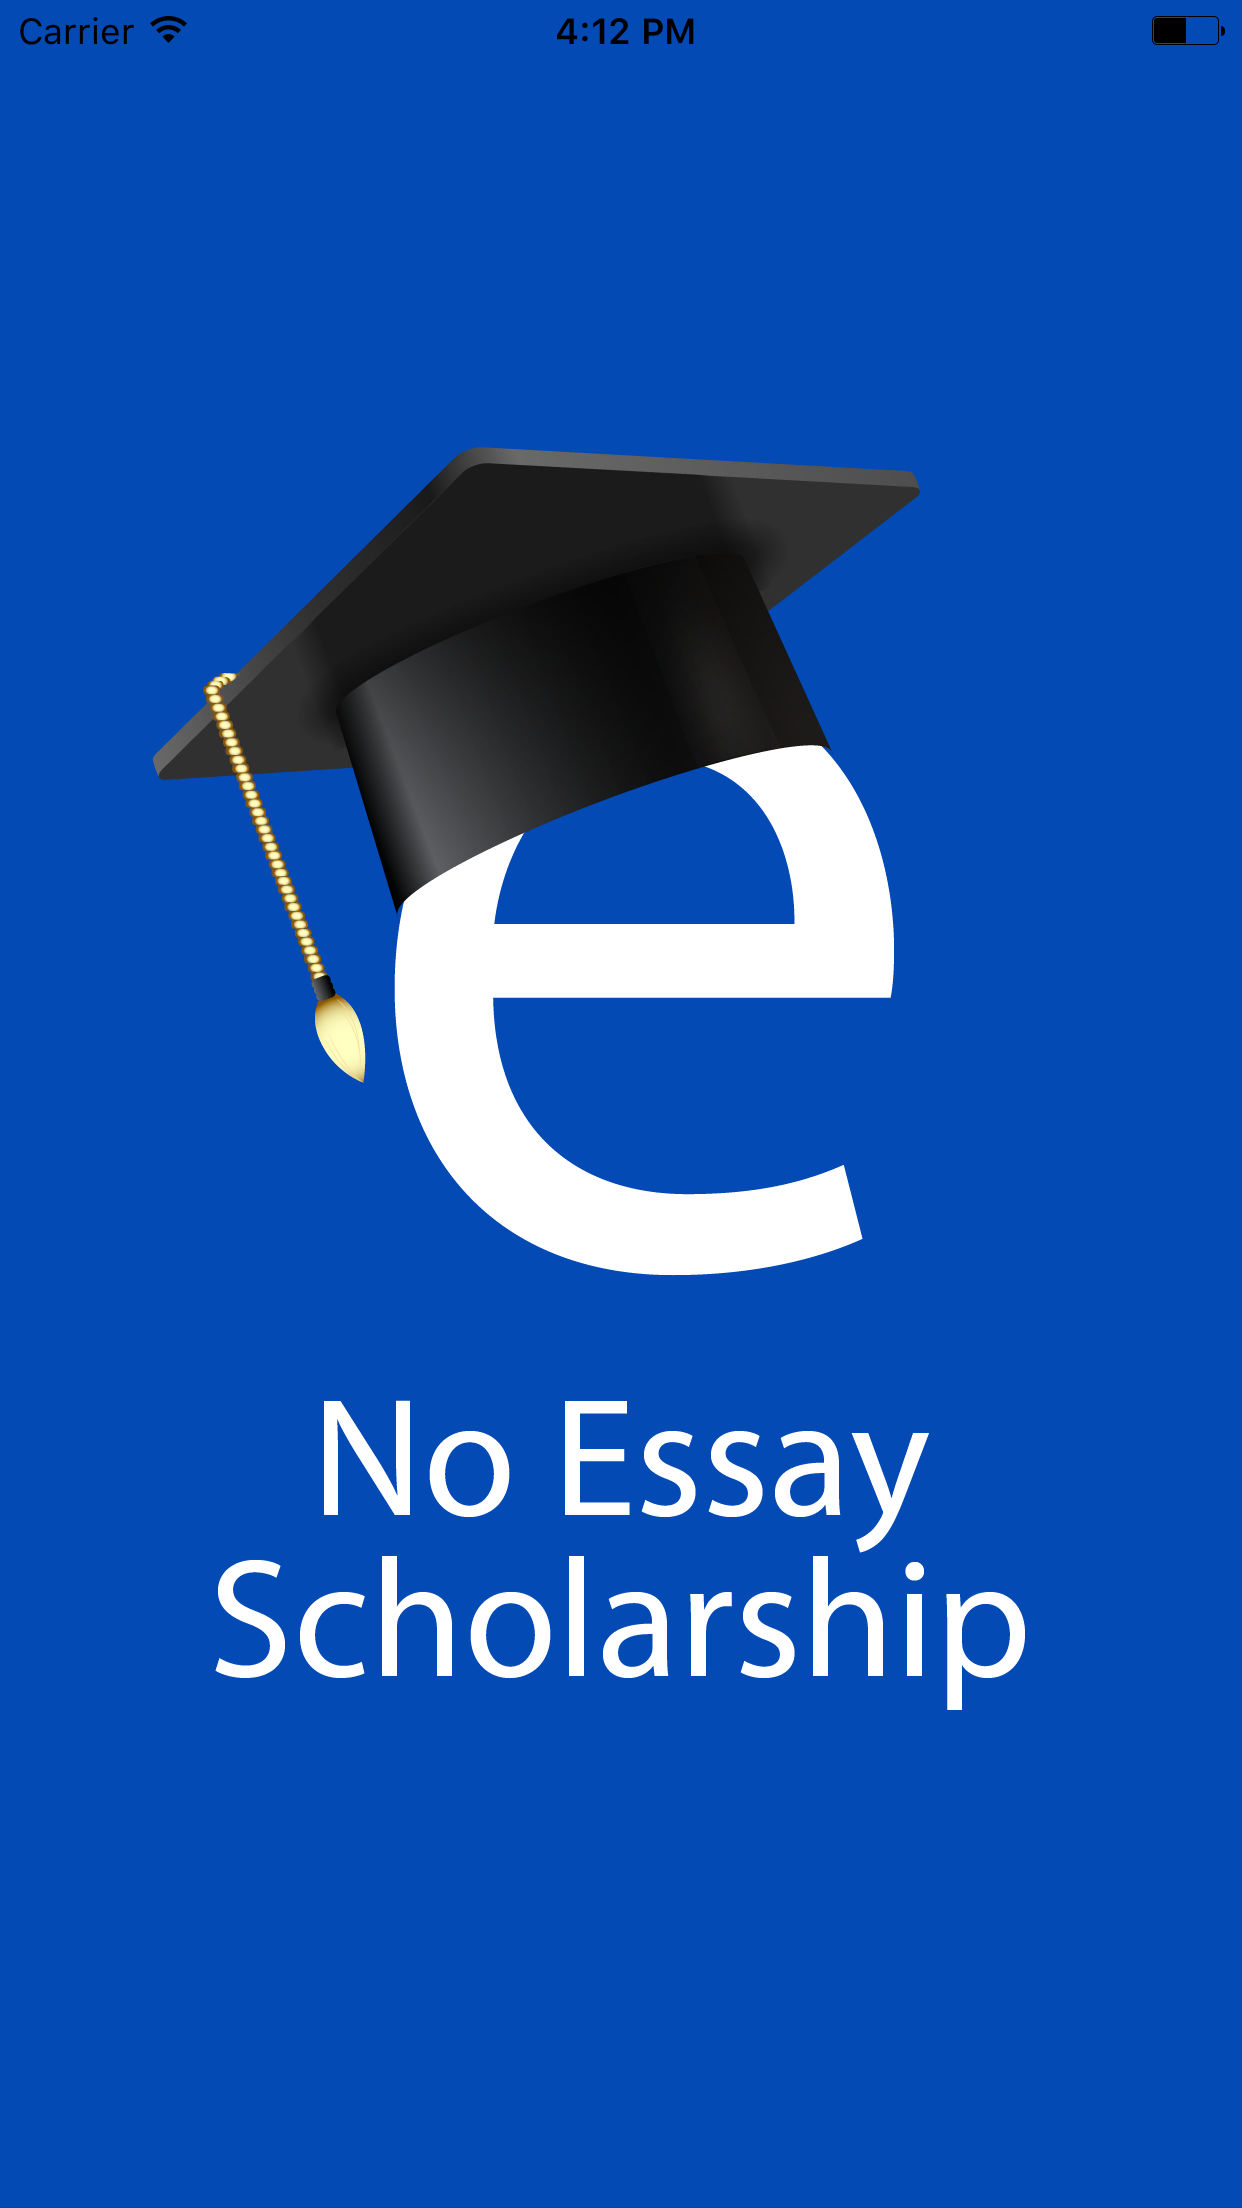 011 Essay Scholarship Search Push Apply Hafiz Adnan Shafiq No Applications Required Free Contest For High School Seniors Fast Legit App Cappex College Prowler Scam Review Rare Scholarships 2018 Short Full